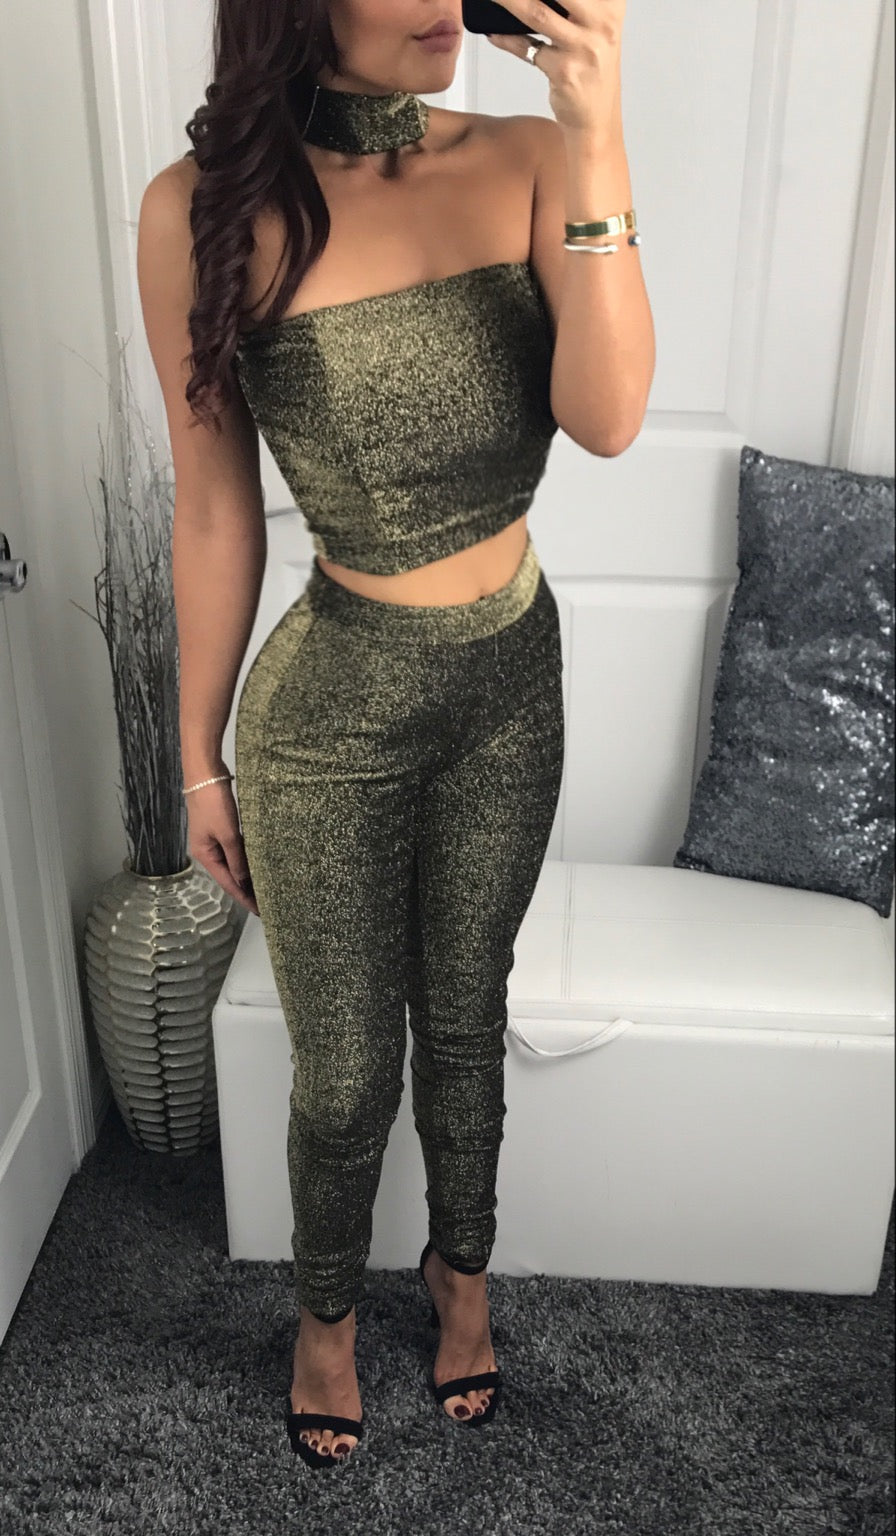 Luna Pant Set - Gold Glitter 2 Piece - Fall by Halos Boutique